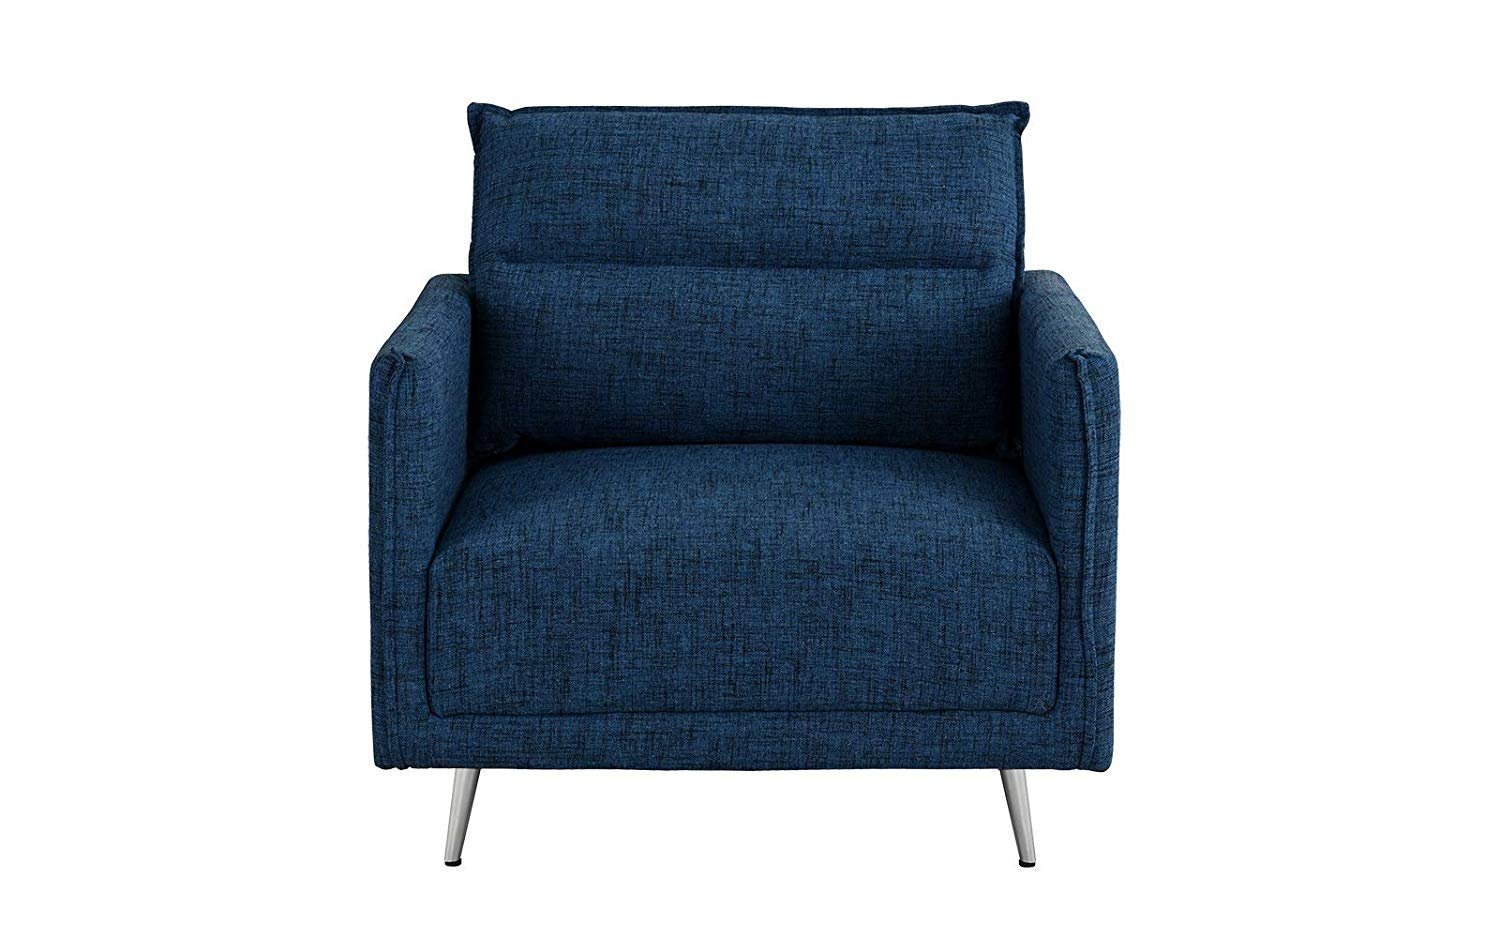 Details About Upholstered 35 4 Fabric Armchair Living Room Lounge Accent Chair Dark Blue